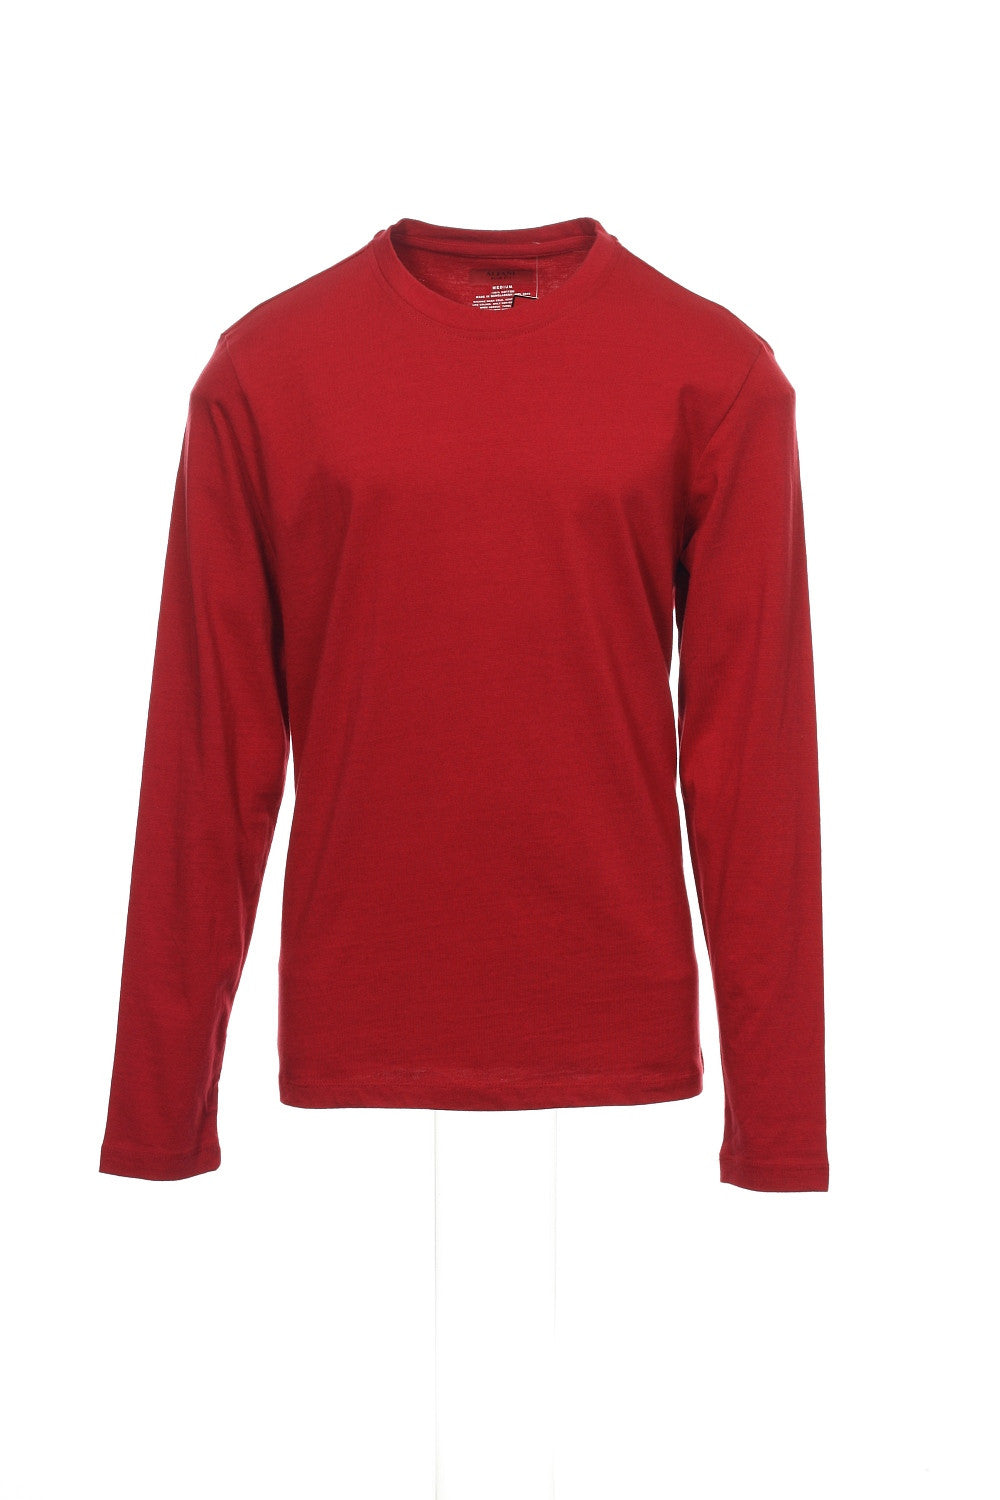 Alfani Red Mens Red Heather T-Shirt